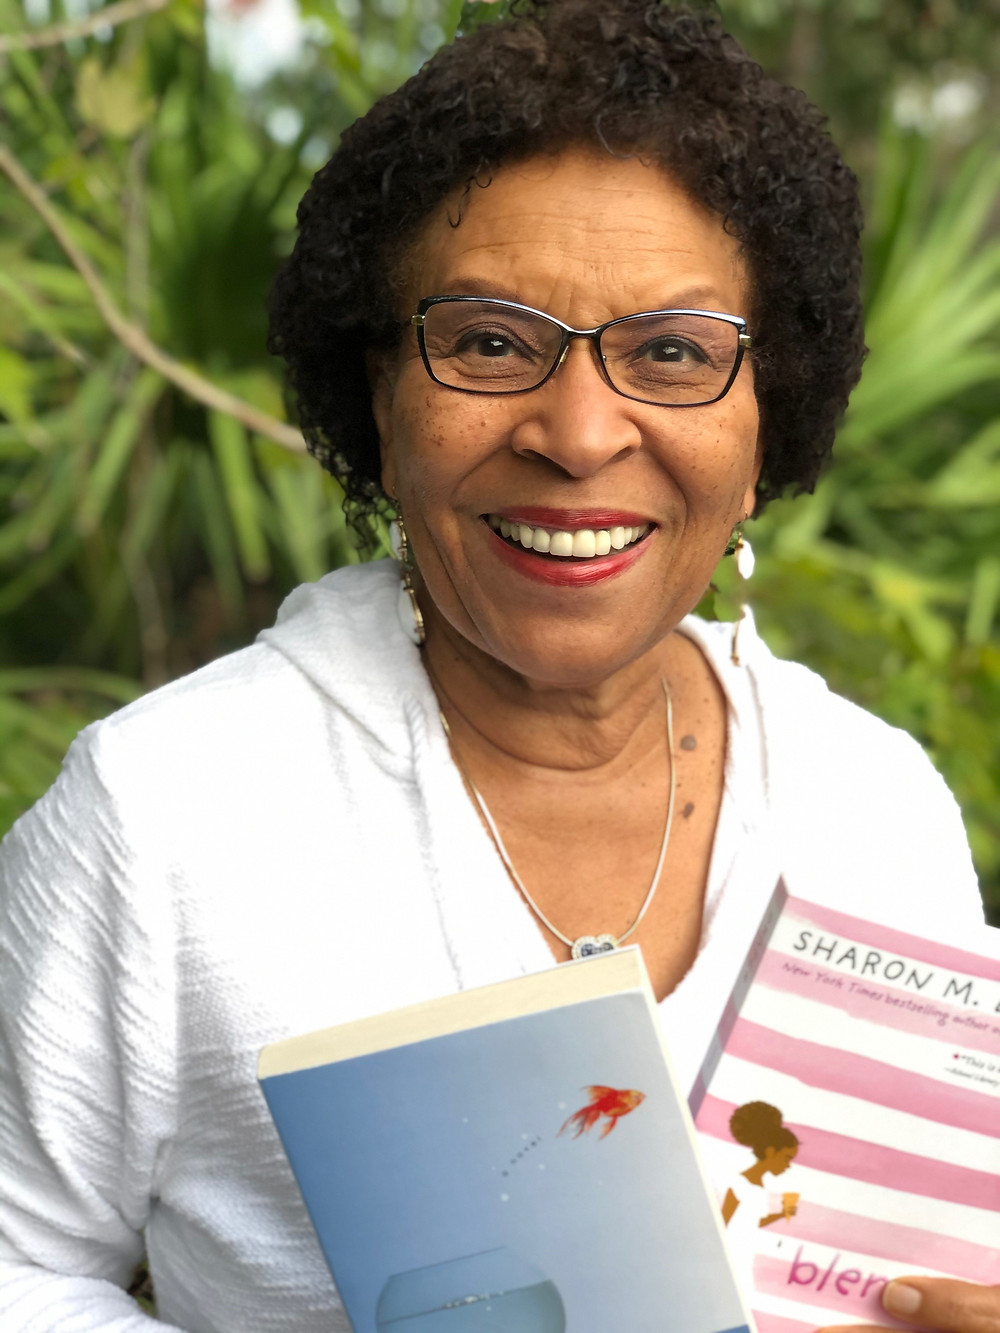 African American woman in a white shirt, holding two books in her hand.